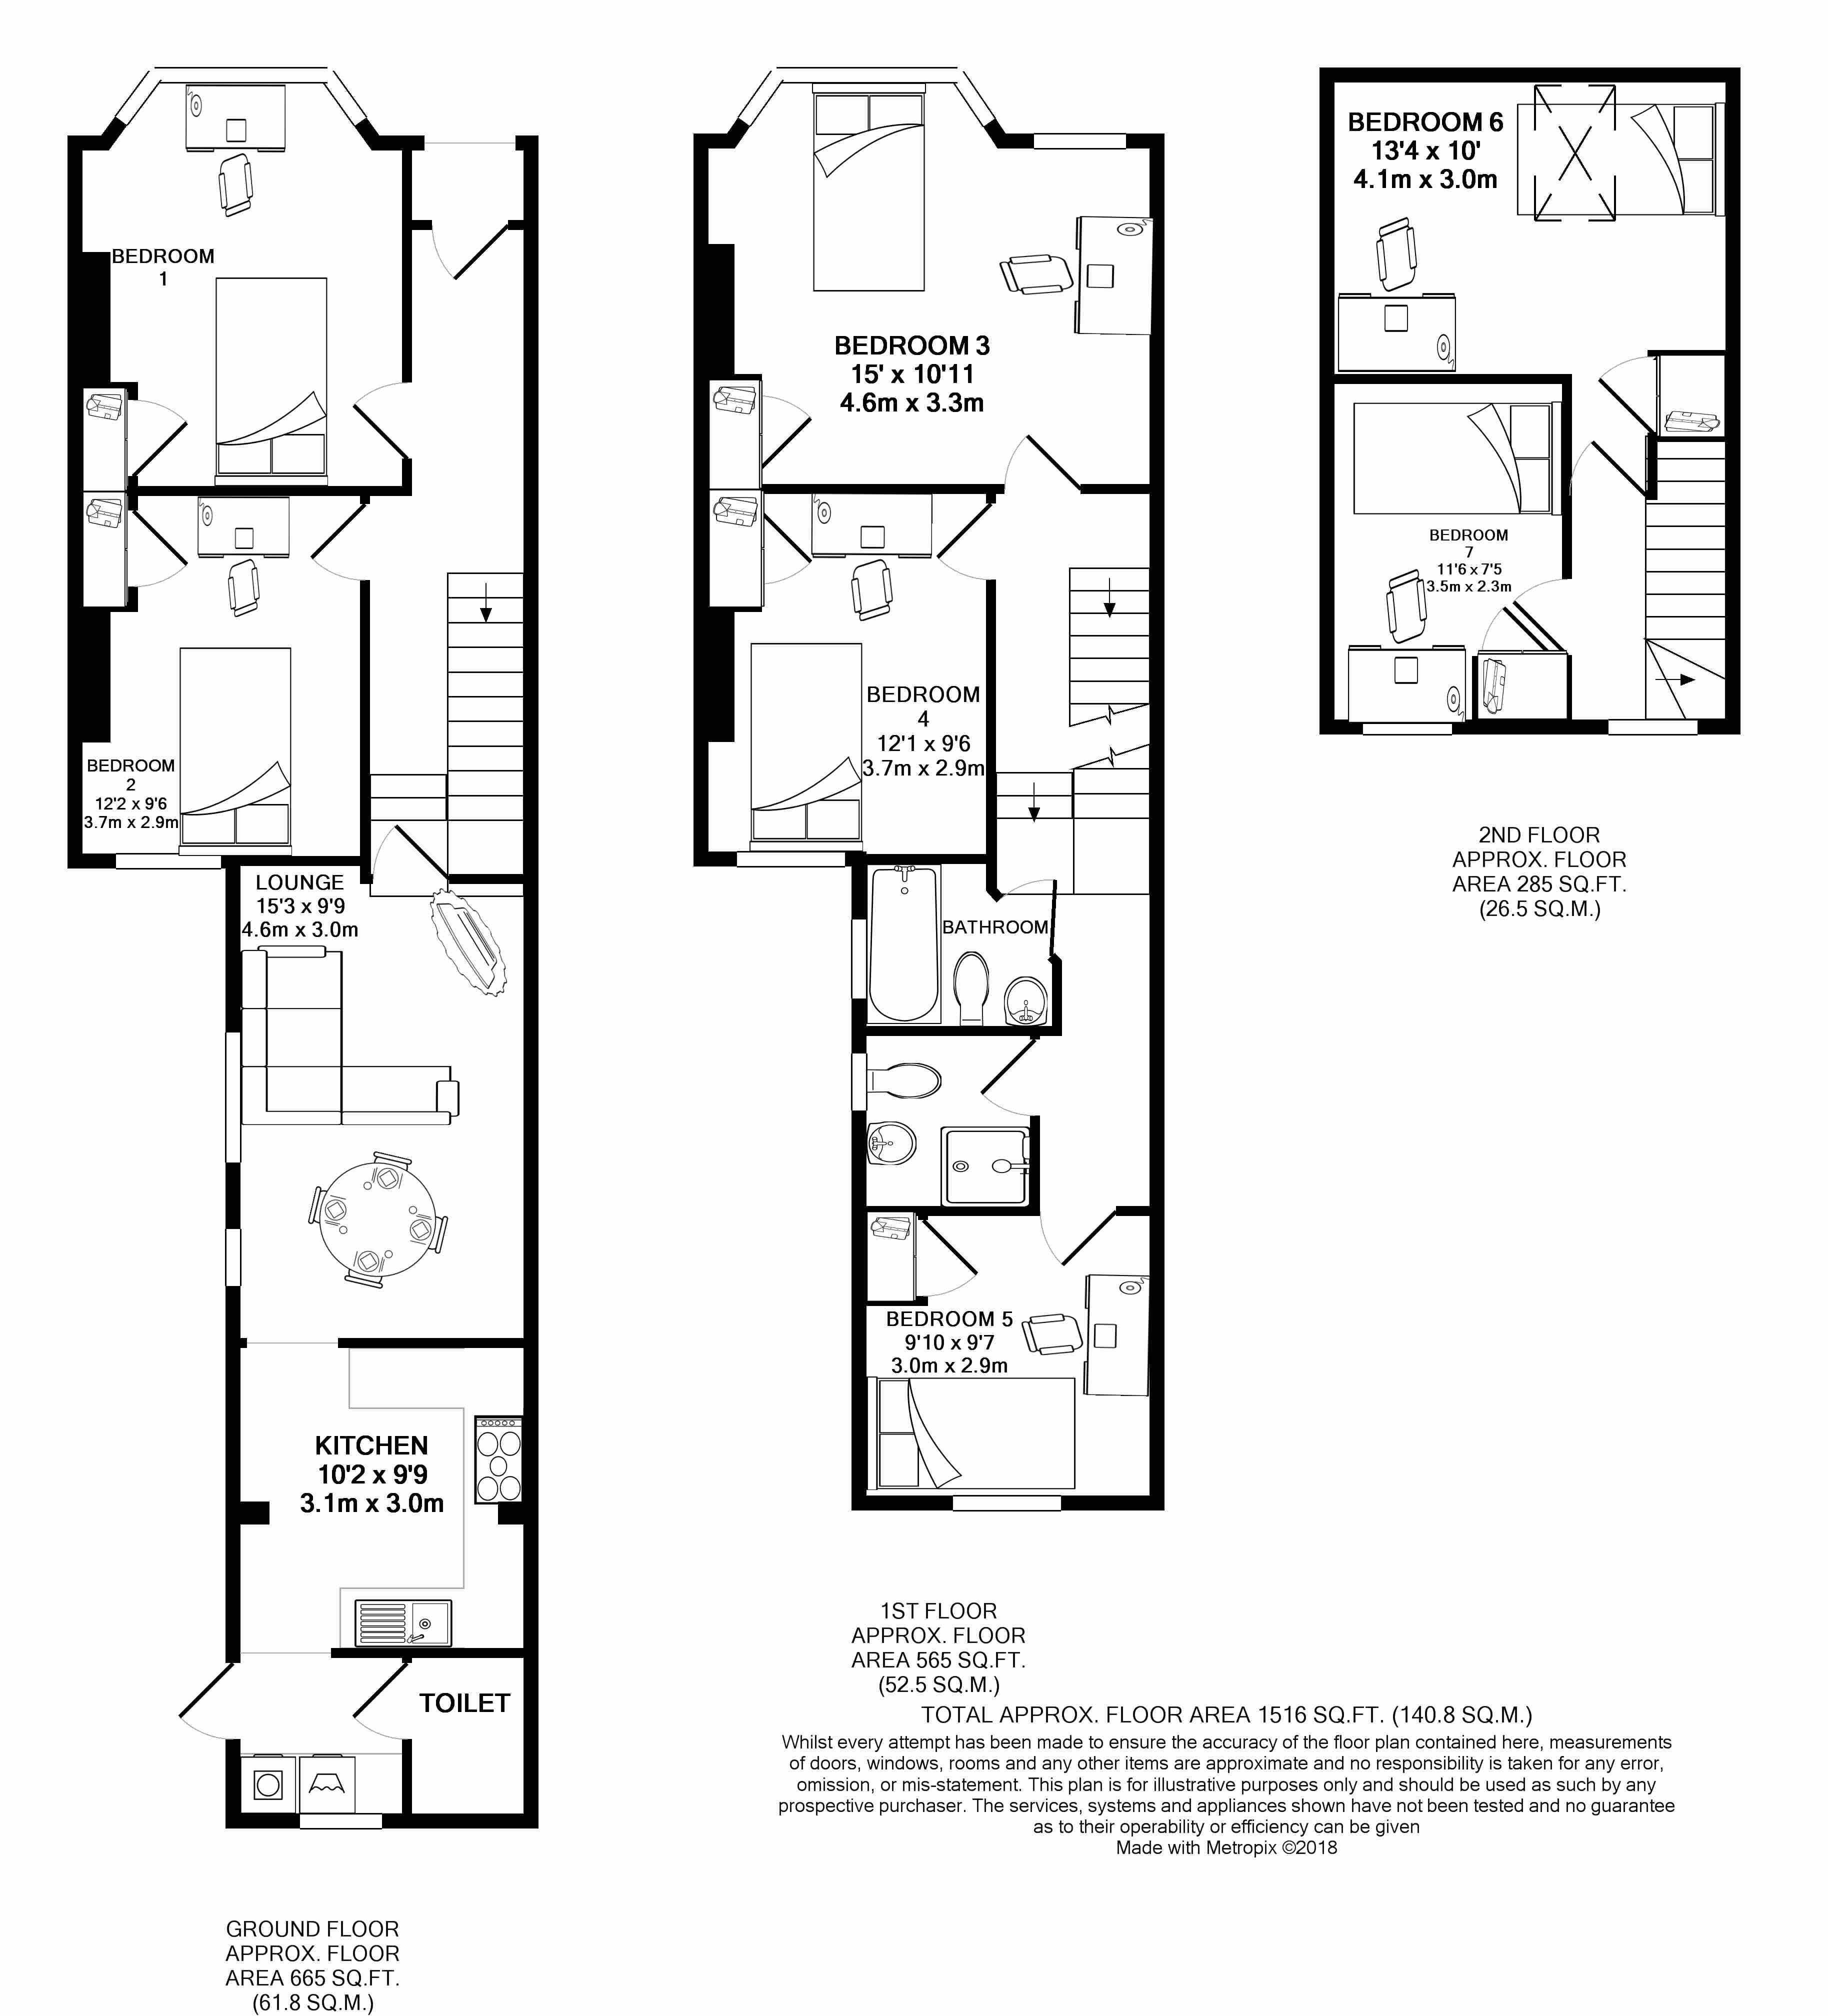 140 Mackintosh place - floorplans